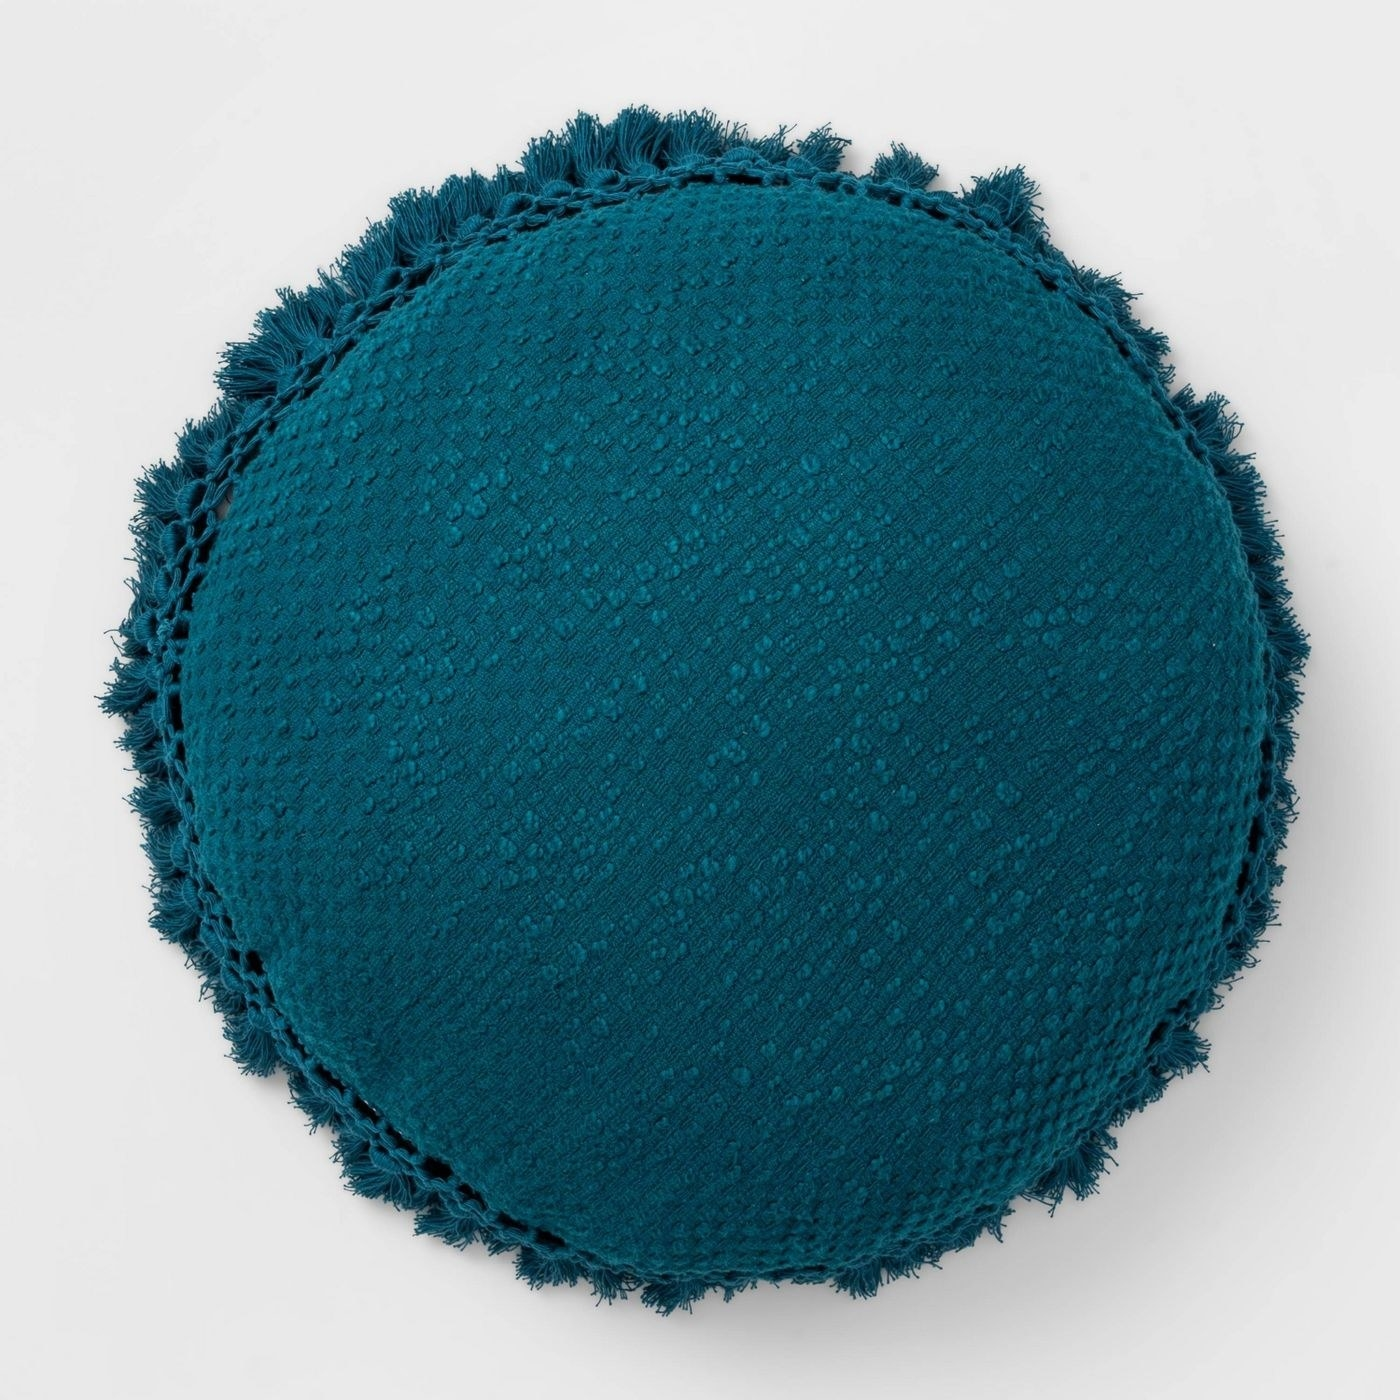 the round teal pillow